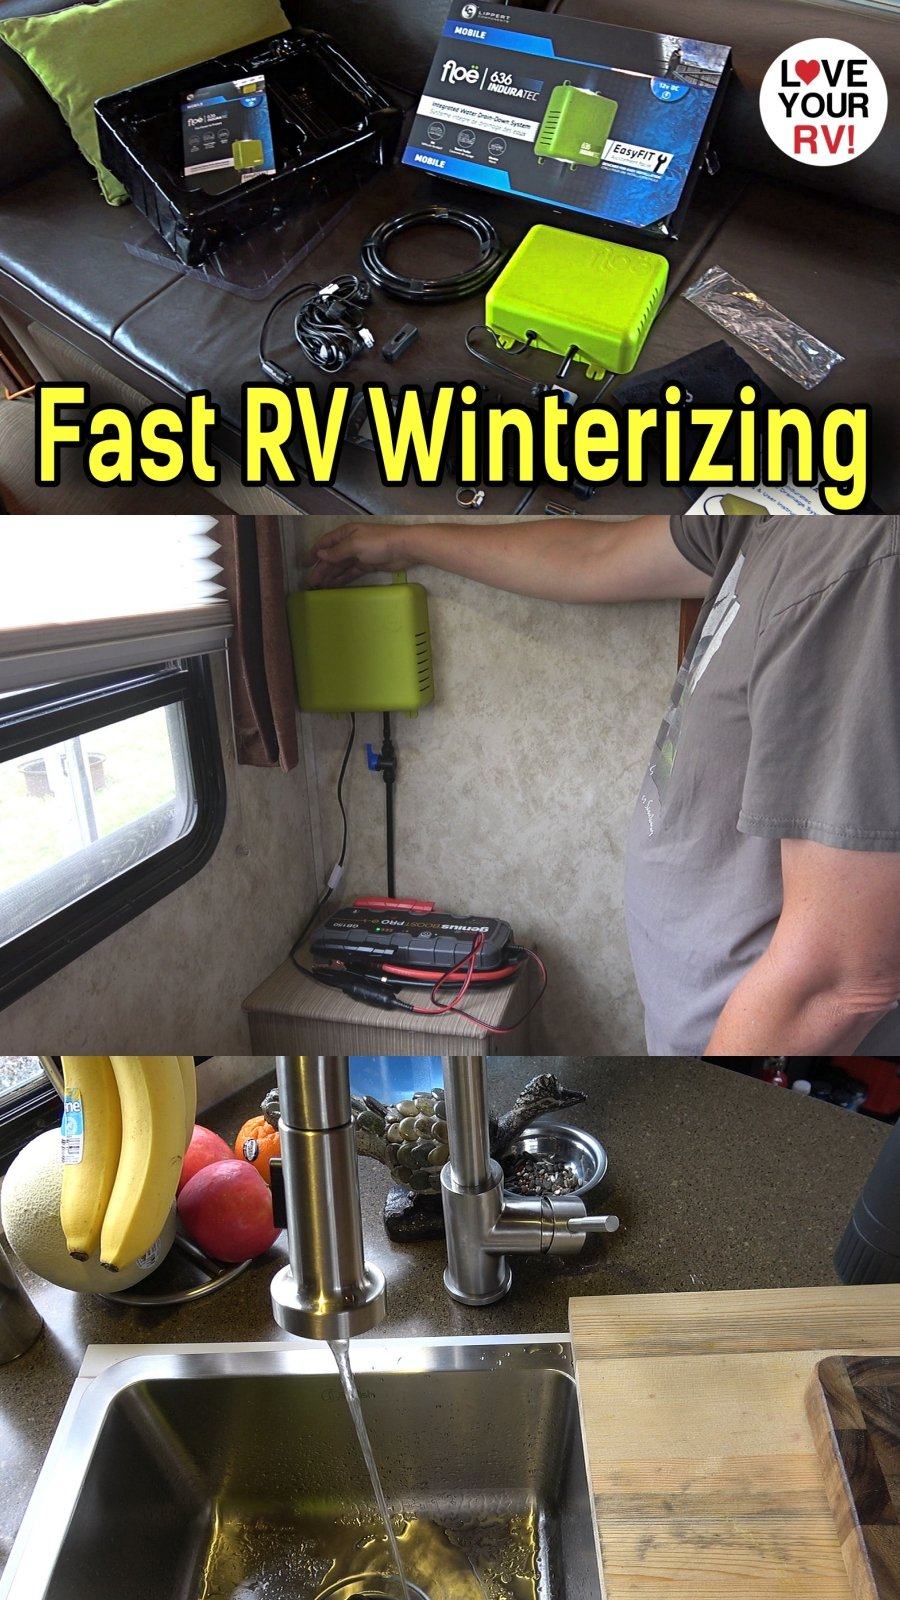 Install and Demo of the Lippert Floe RV Plumbing Automated Drainage System - Quick and Easy way to winterize the RV